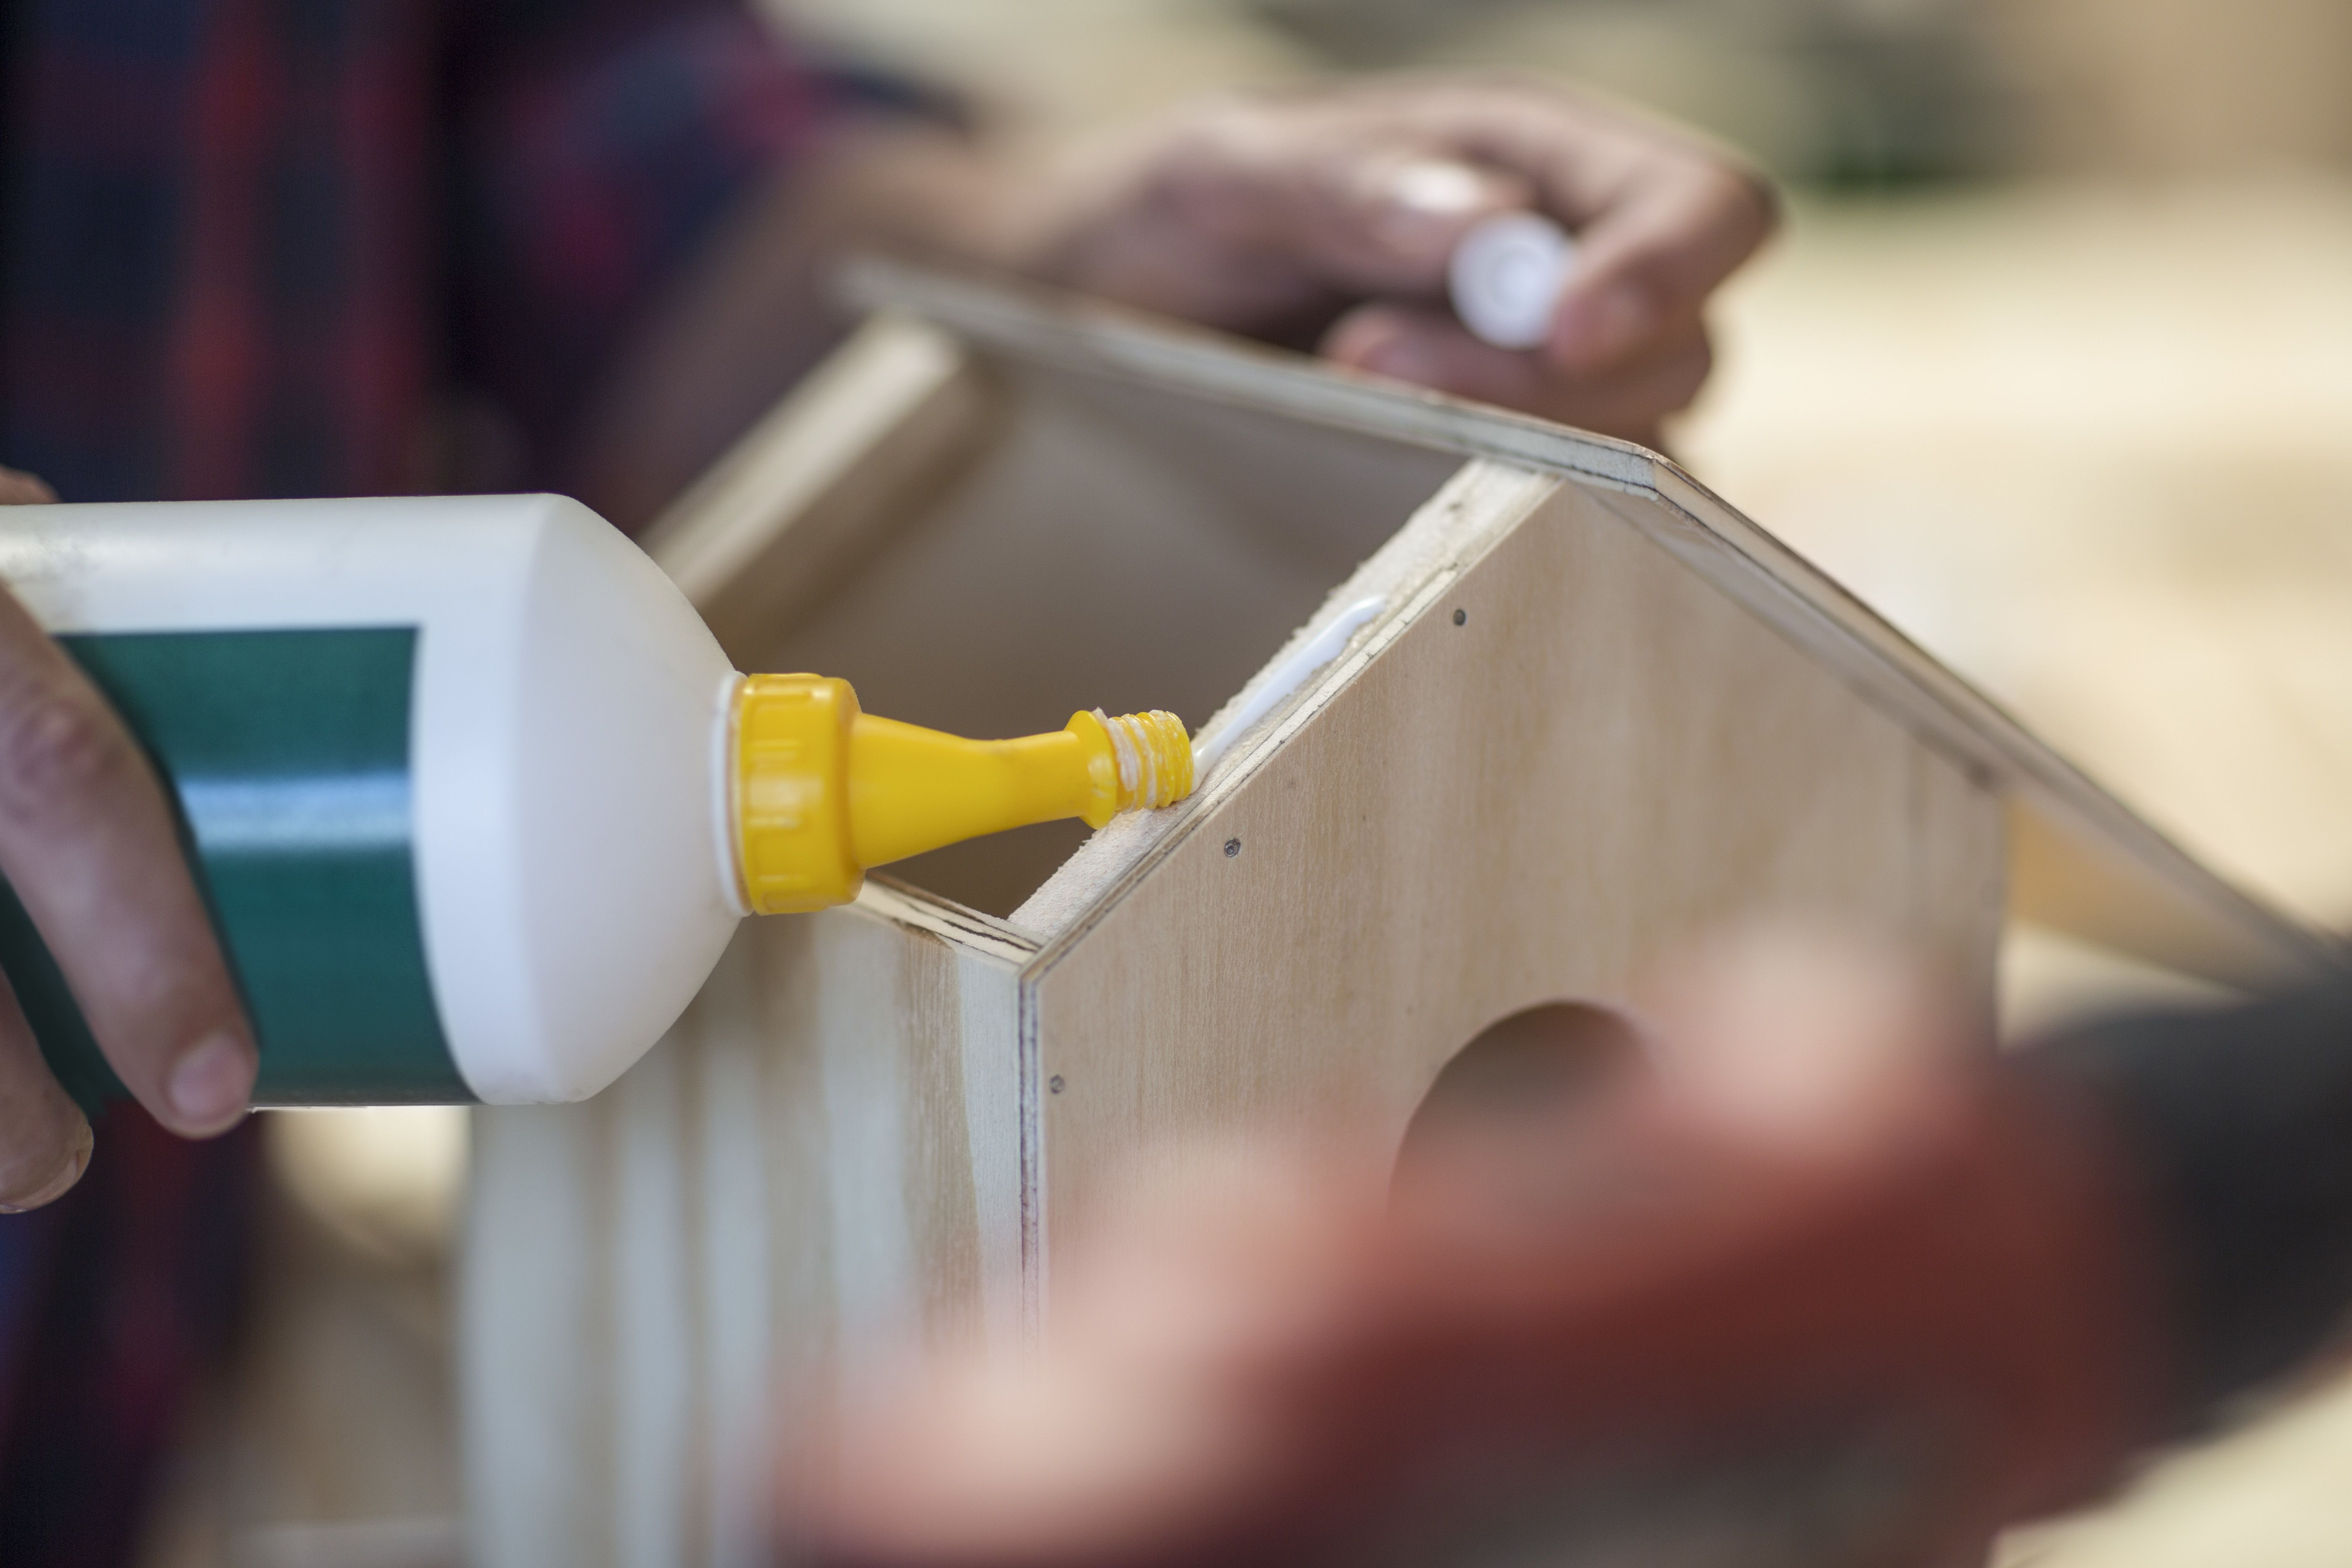 Tips For Removing Dried Glues And Adhesives